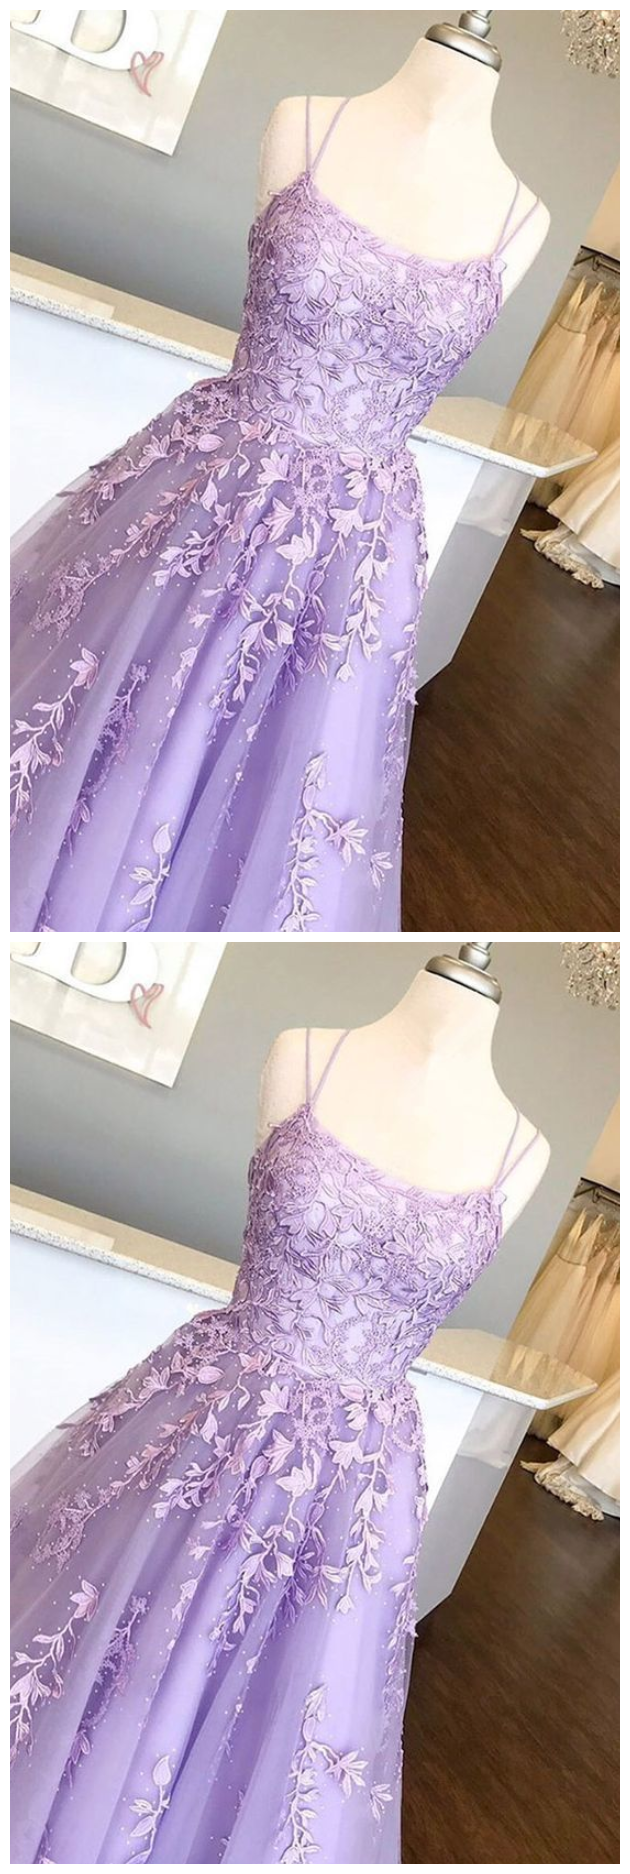 Lilac Prom Dresses With Appliques Long Princess Prom Dress Prom Dance Dress Formal Prom Dress Lilac Prom Dresses Prom Dresses Formal Dresses Prom [ 1874 x 630 Pixel ]